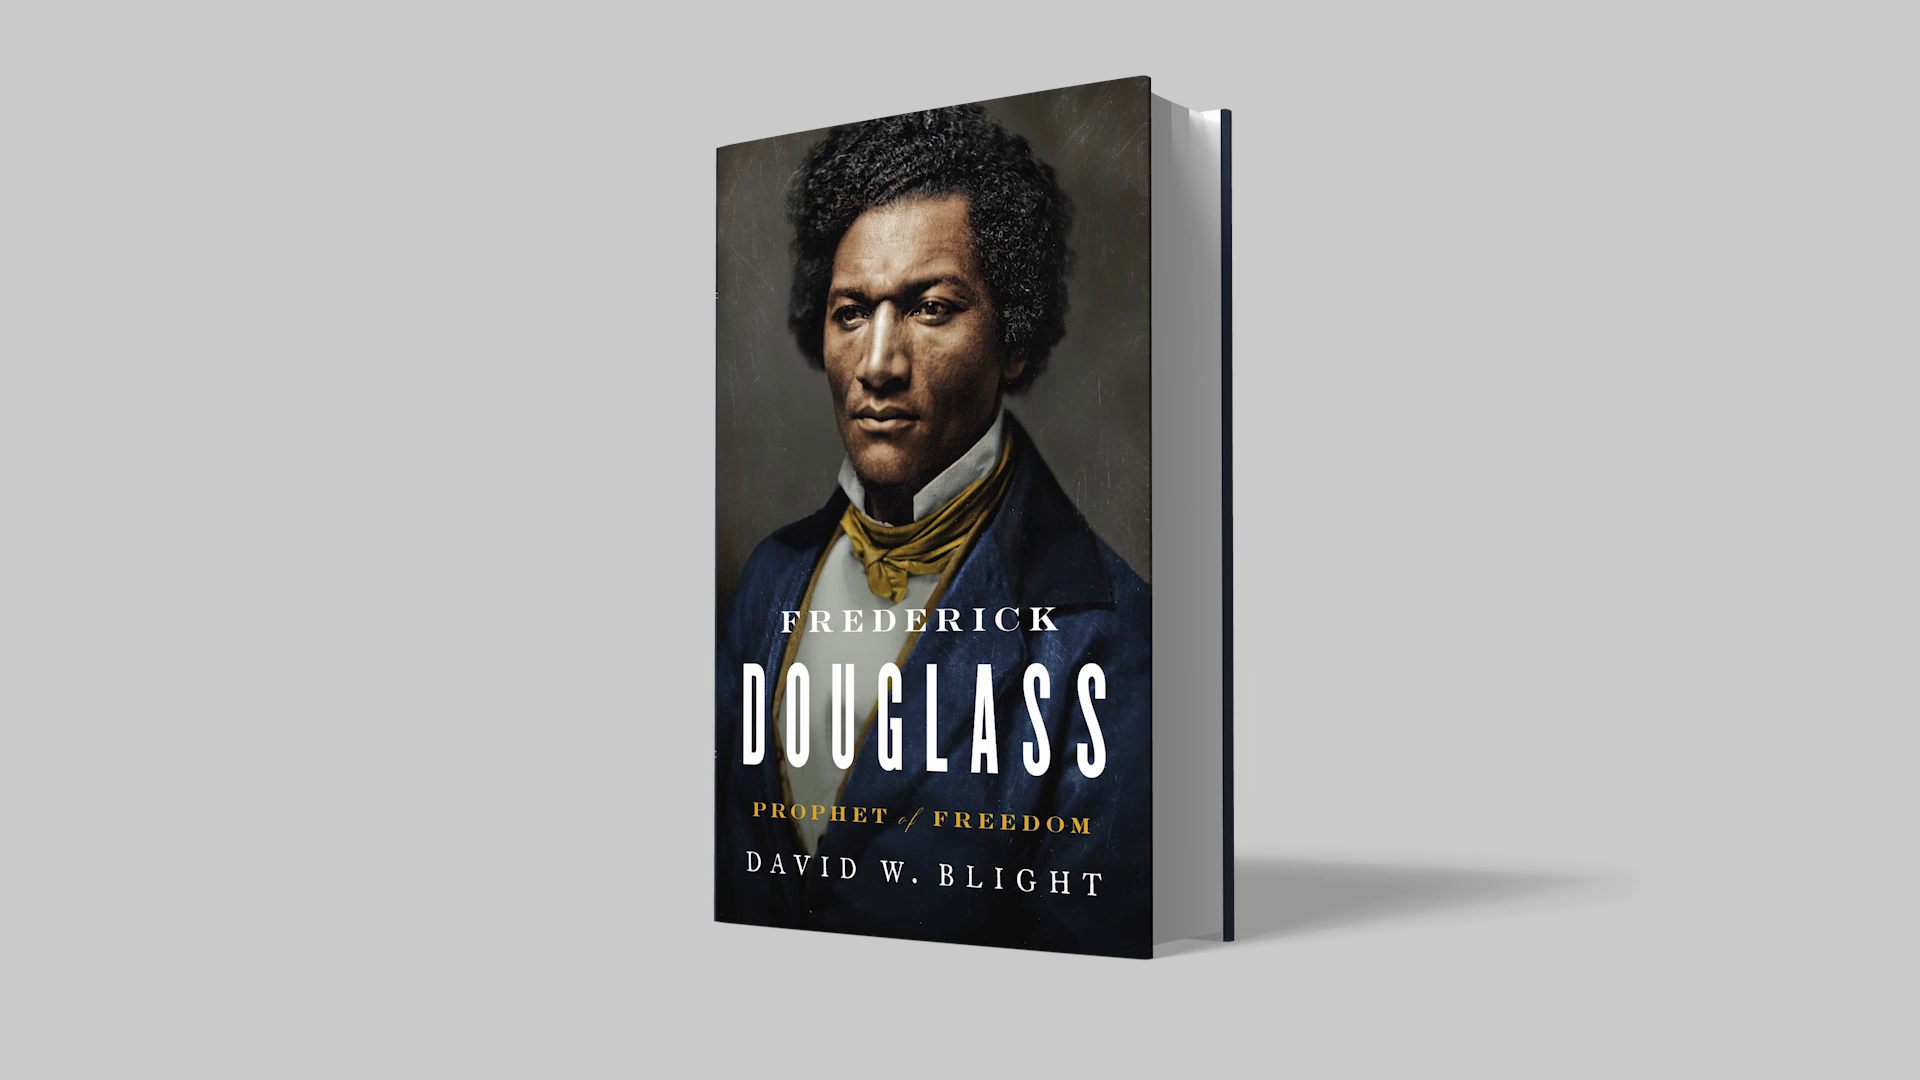 5 Things You Should Know About Frederick Douglass